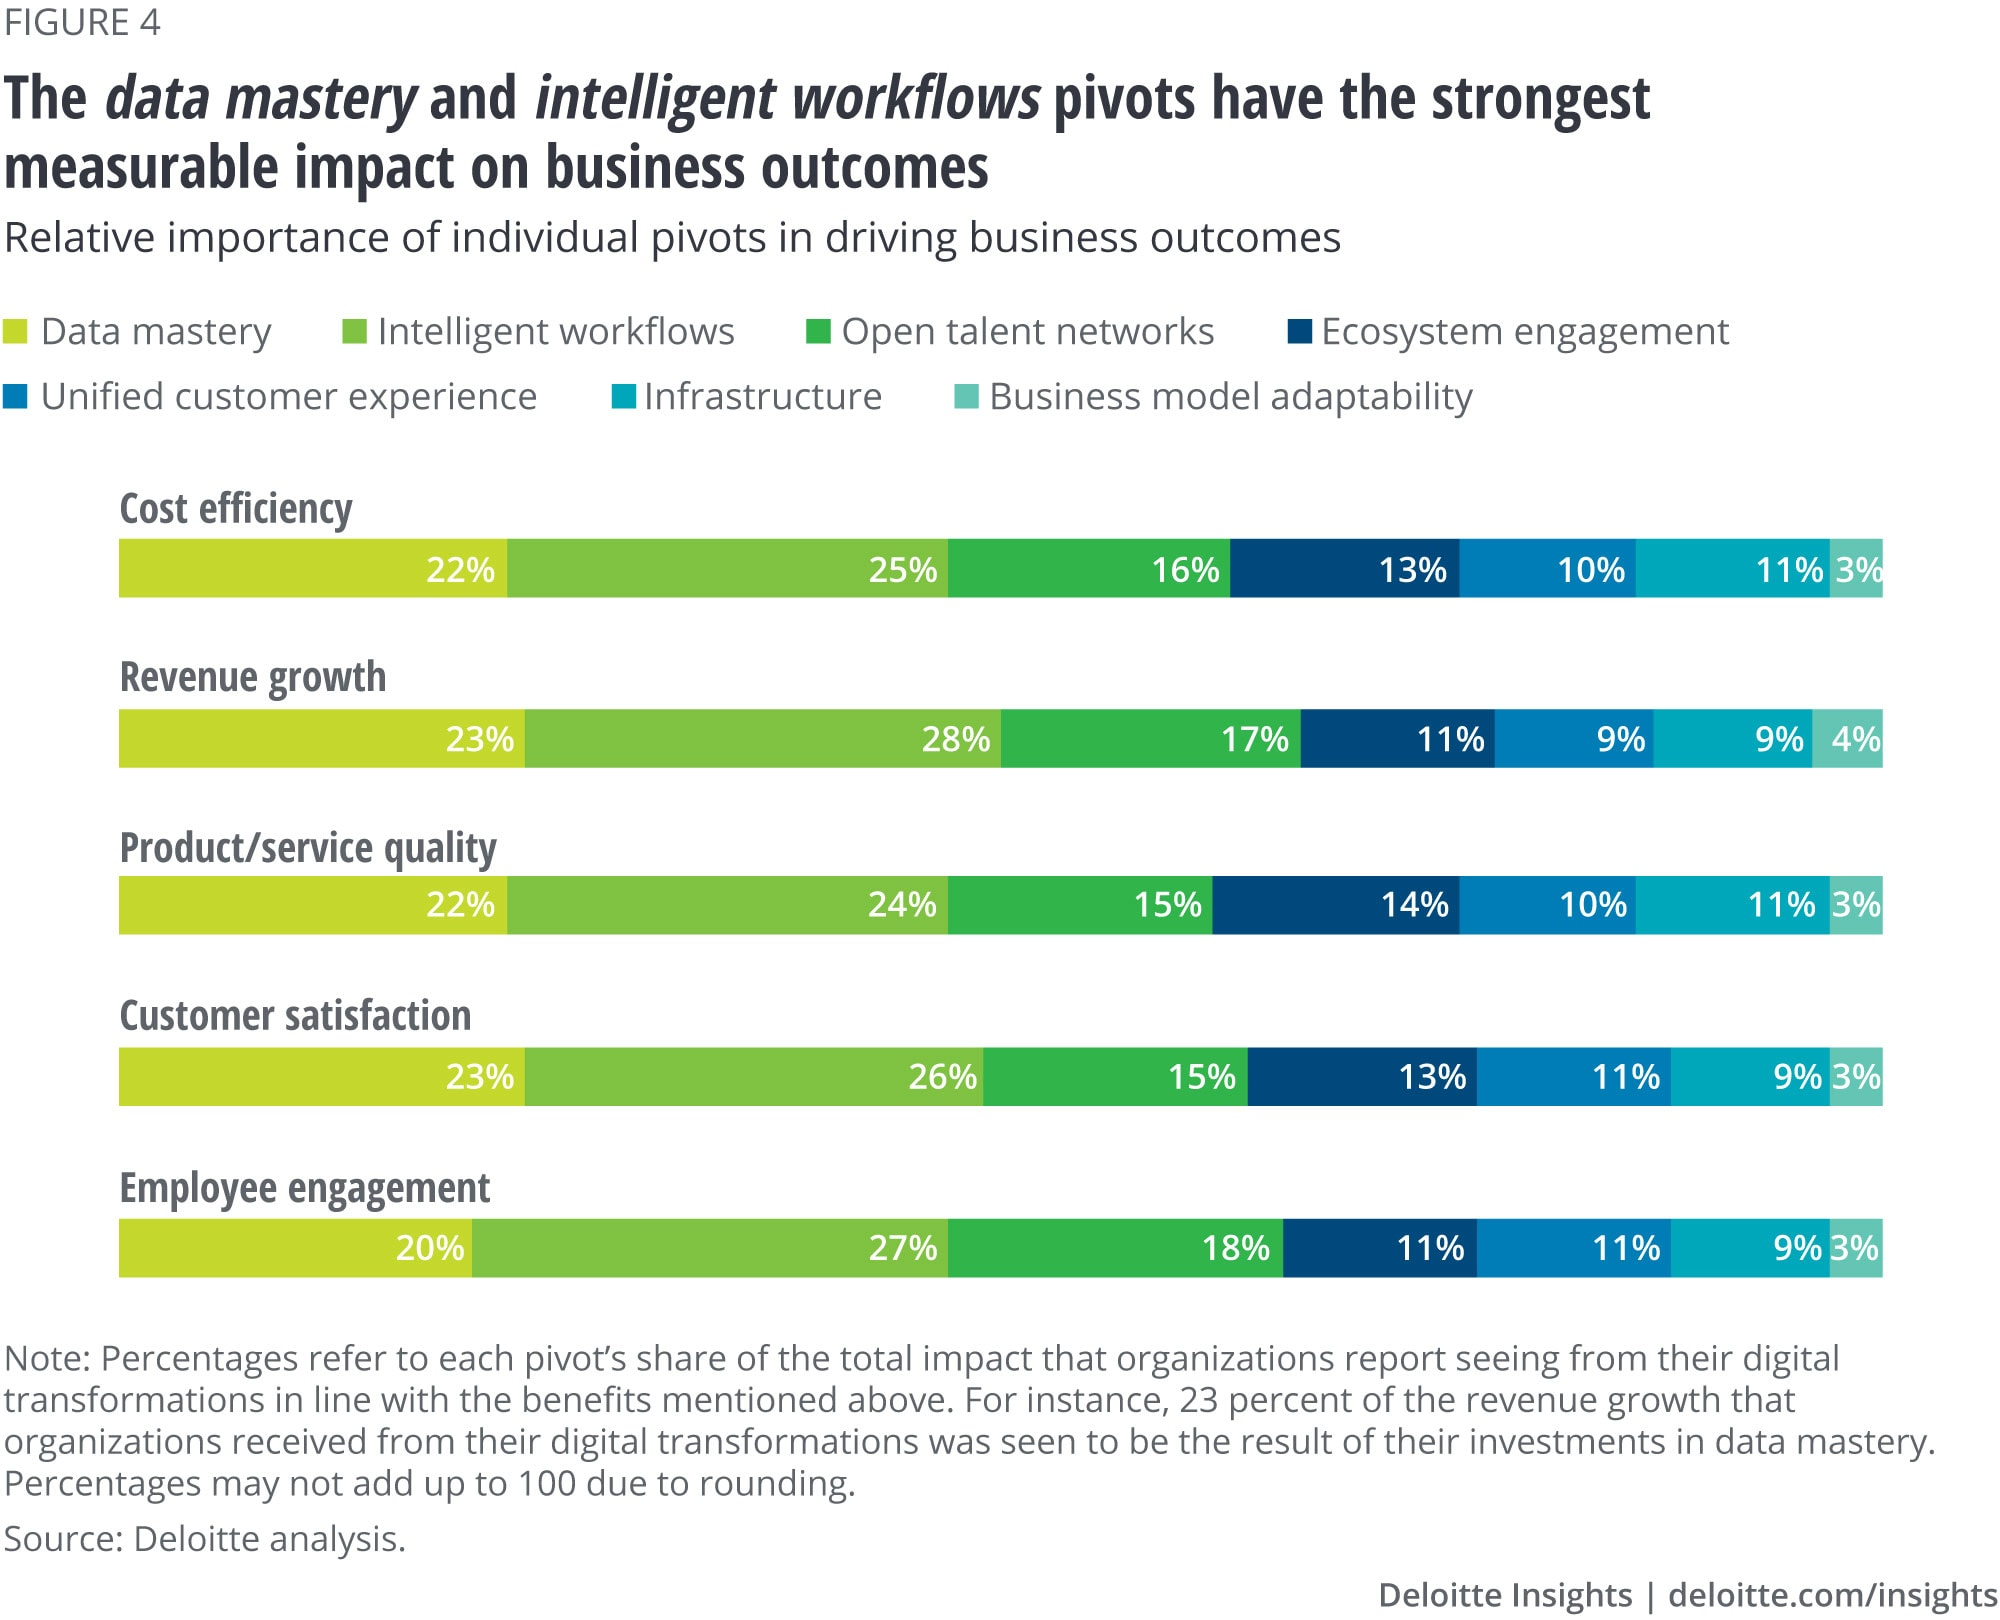 The data mastery and intelligent workflows pivots have the strongest impact on business outcomes